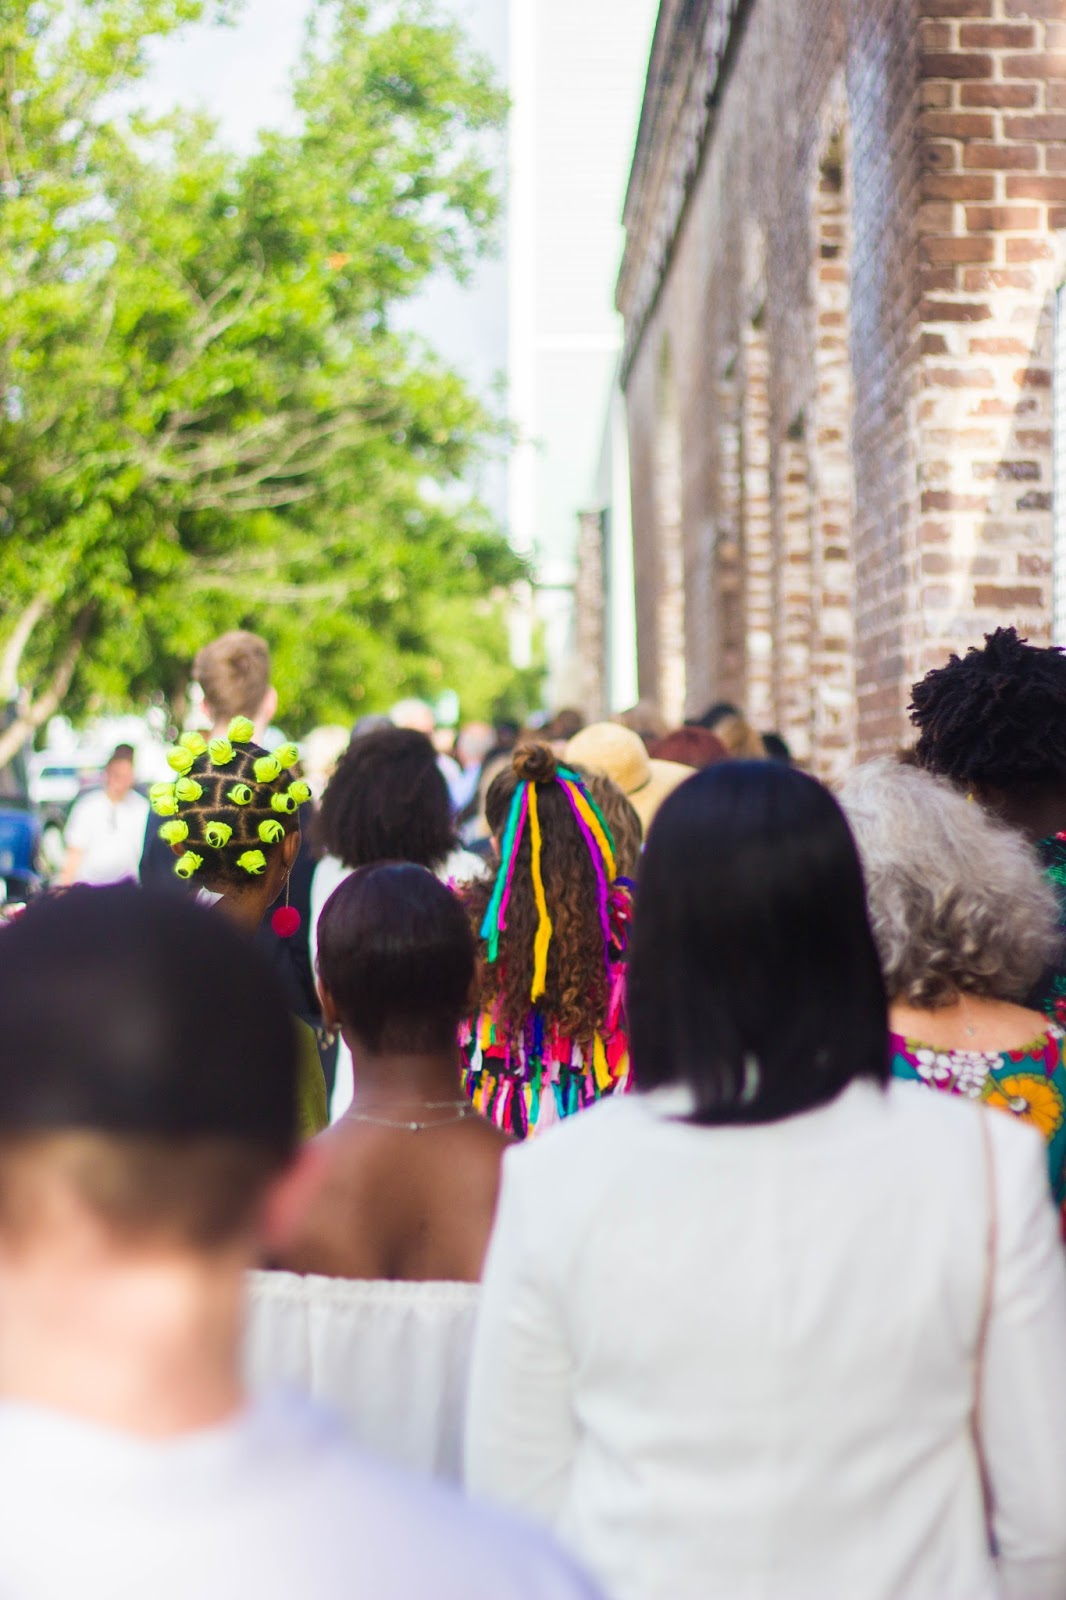 SCAD FASHION SHOW STREET STYLE